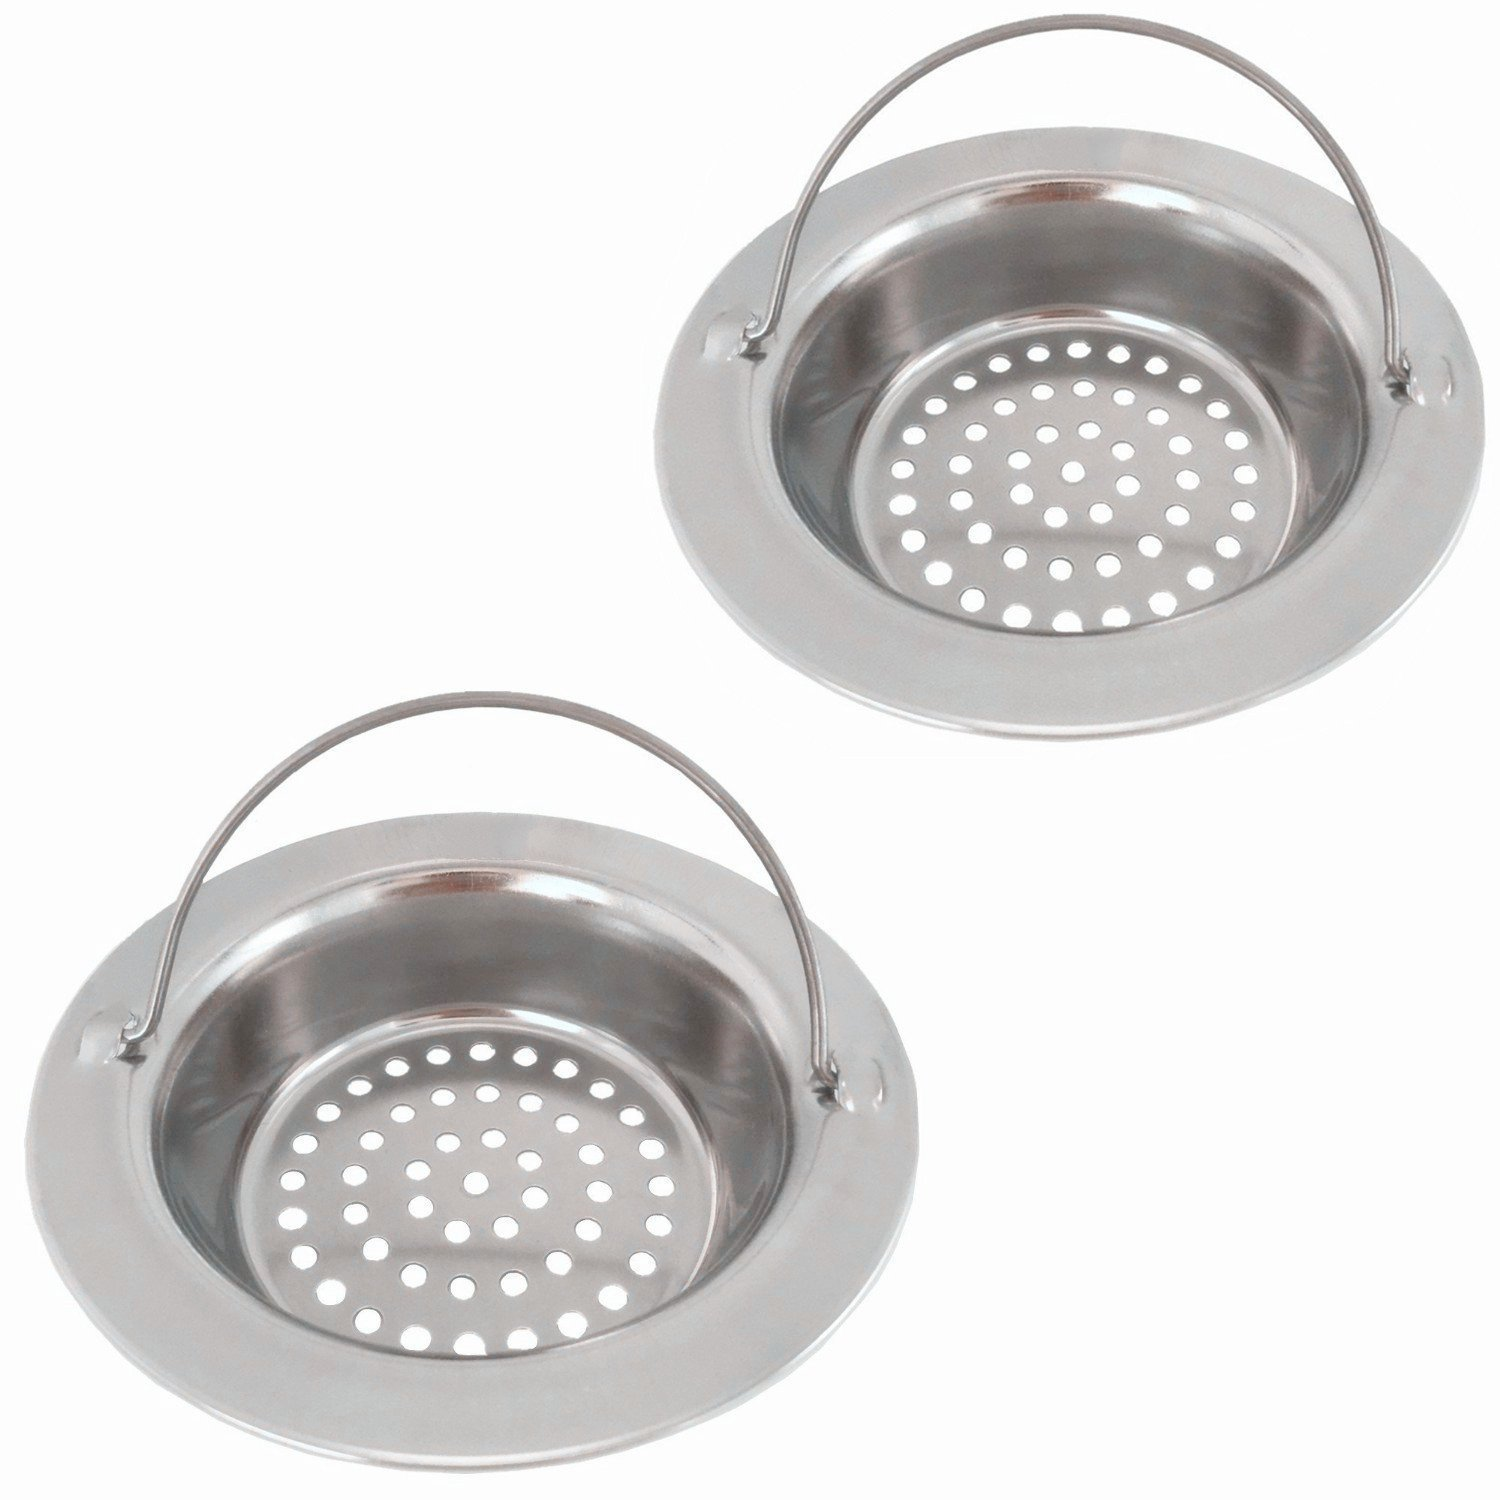 Fengbao 2PCS Stainless Steel Kitchen Sink Strainer Wide